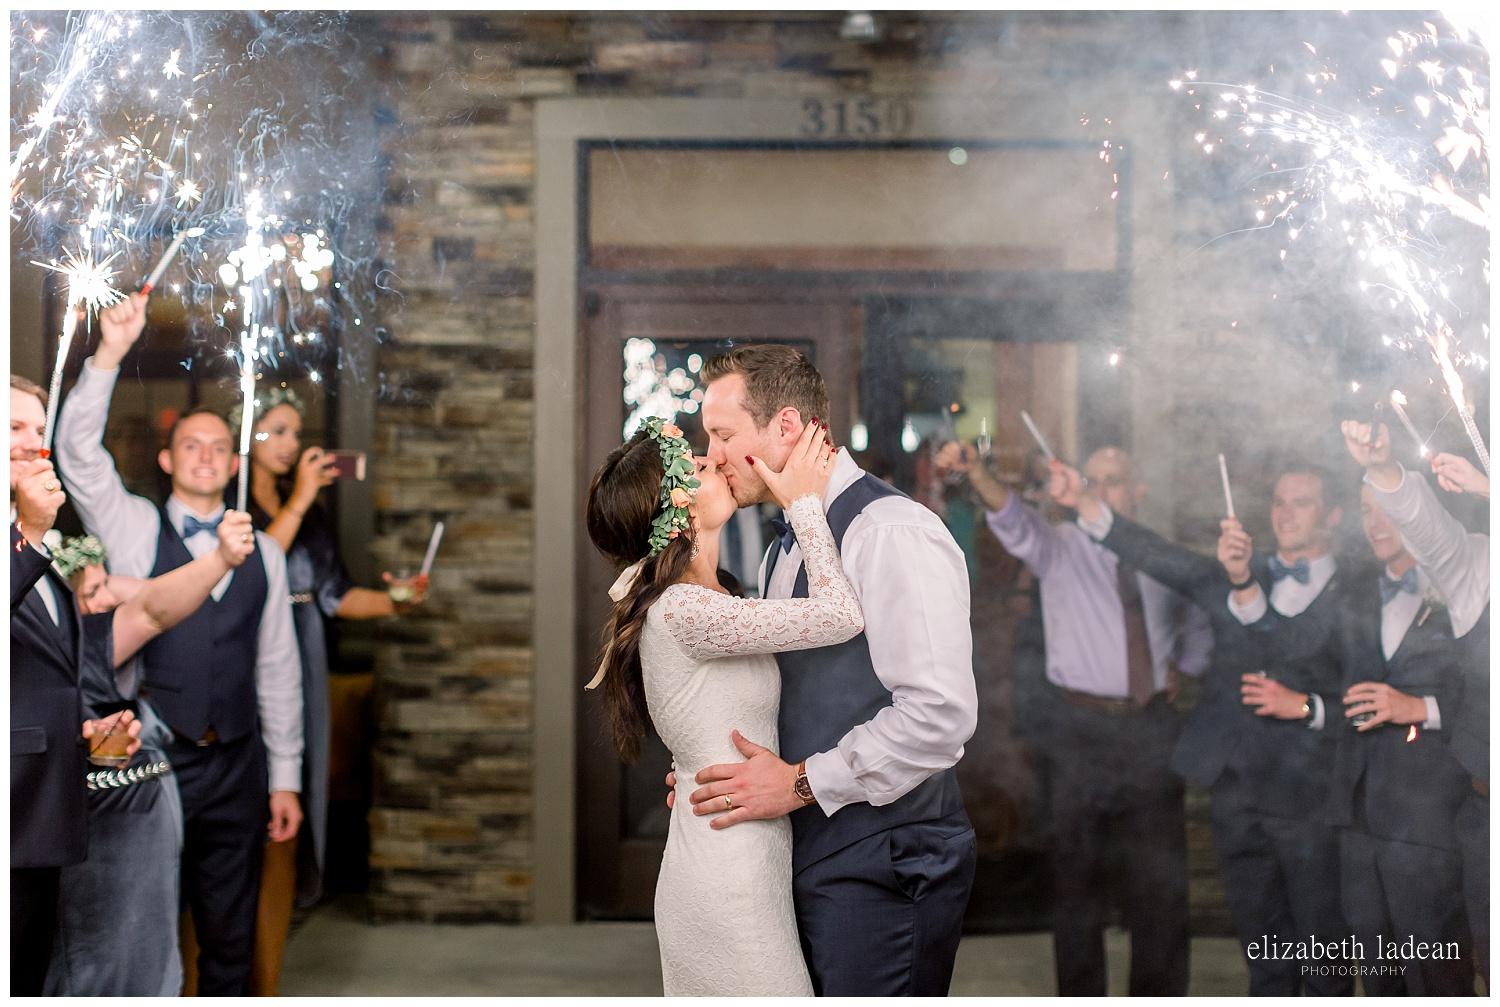 Willow-Creek-Blush-and-Blues-Outdoor-Wedding-Photography-S+Z2018-elizabeth-ladean-photography-photo_0635.jpg